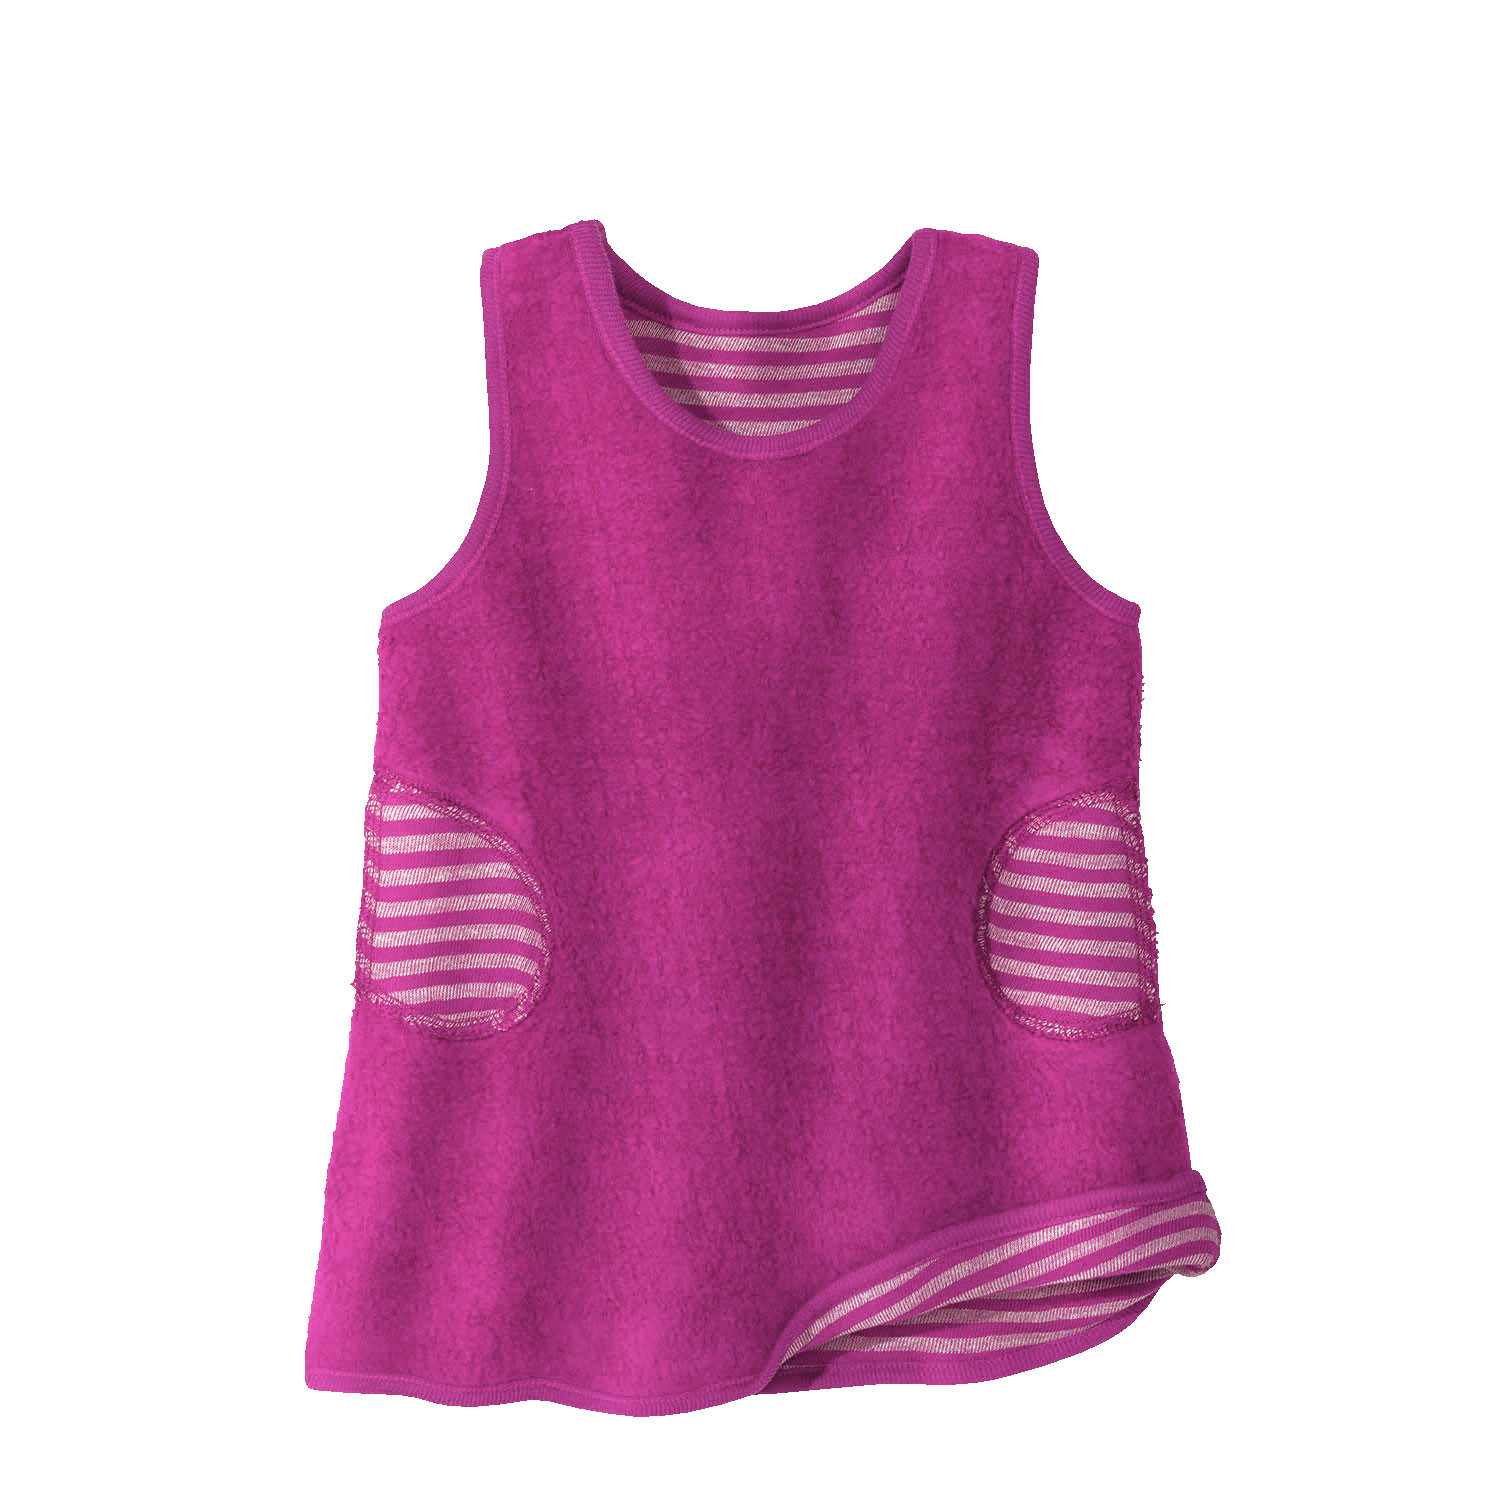 Omkeerbare fleece babytunica, fuchsia/naturel